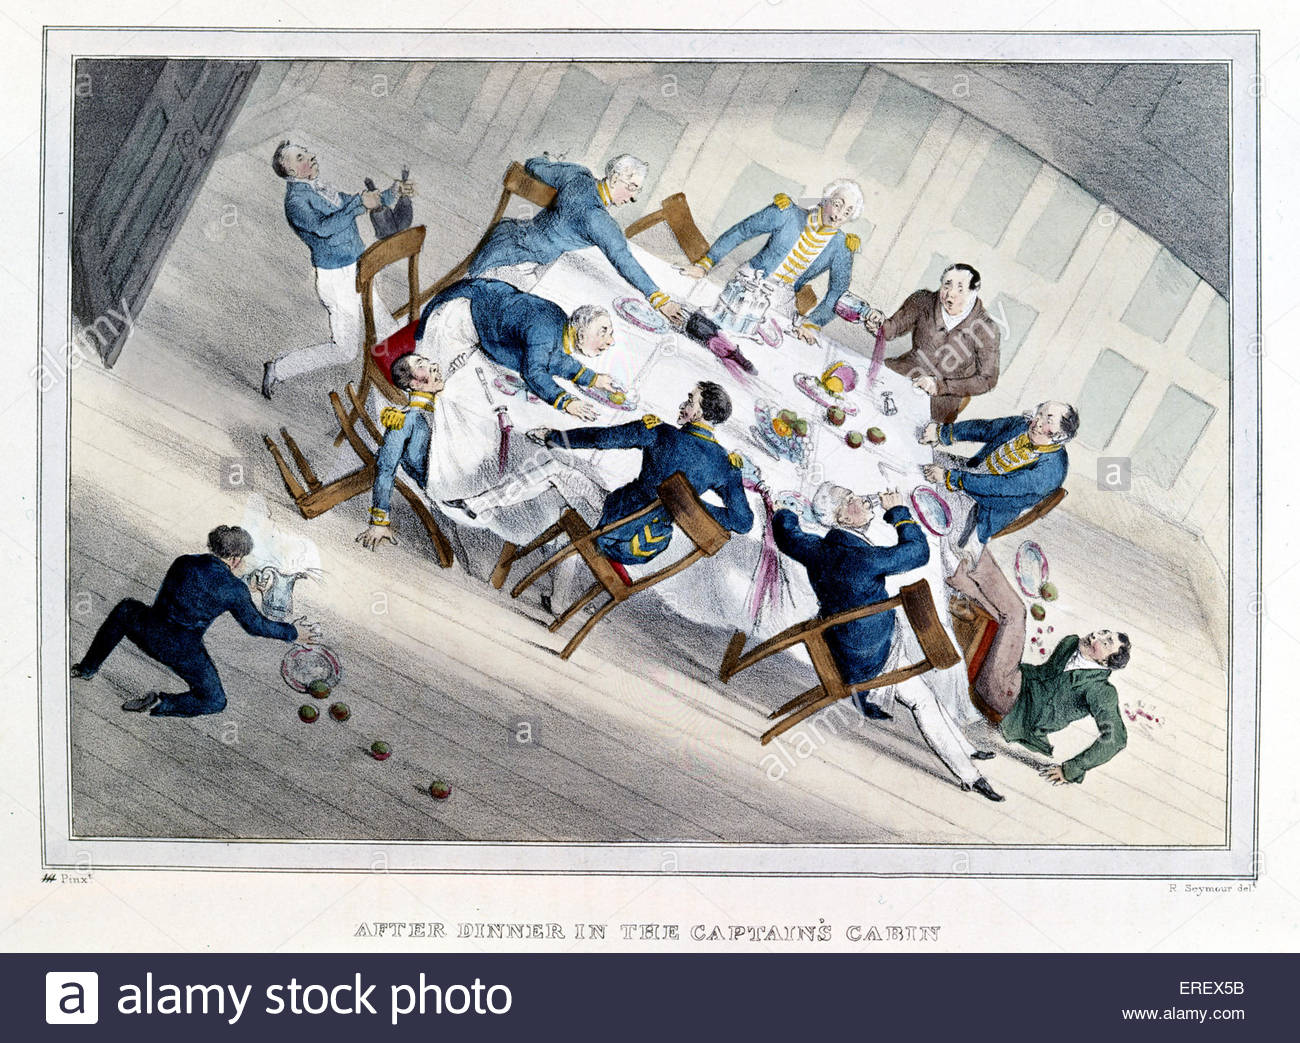 'After dinner in the Captain 's cabin' - early 19th century naval caricature.  Quarters of high- ranking - Stock Image